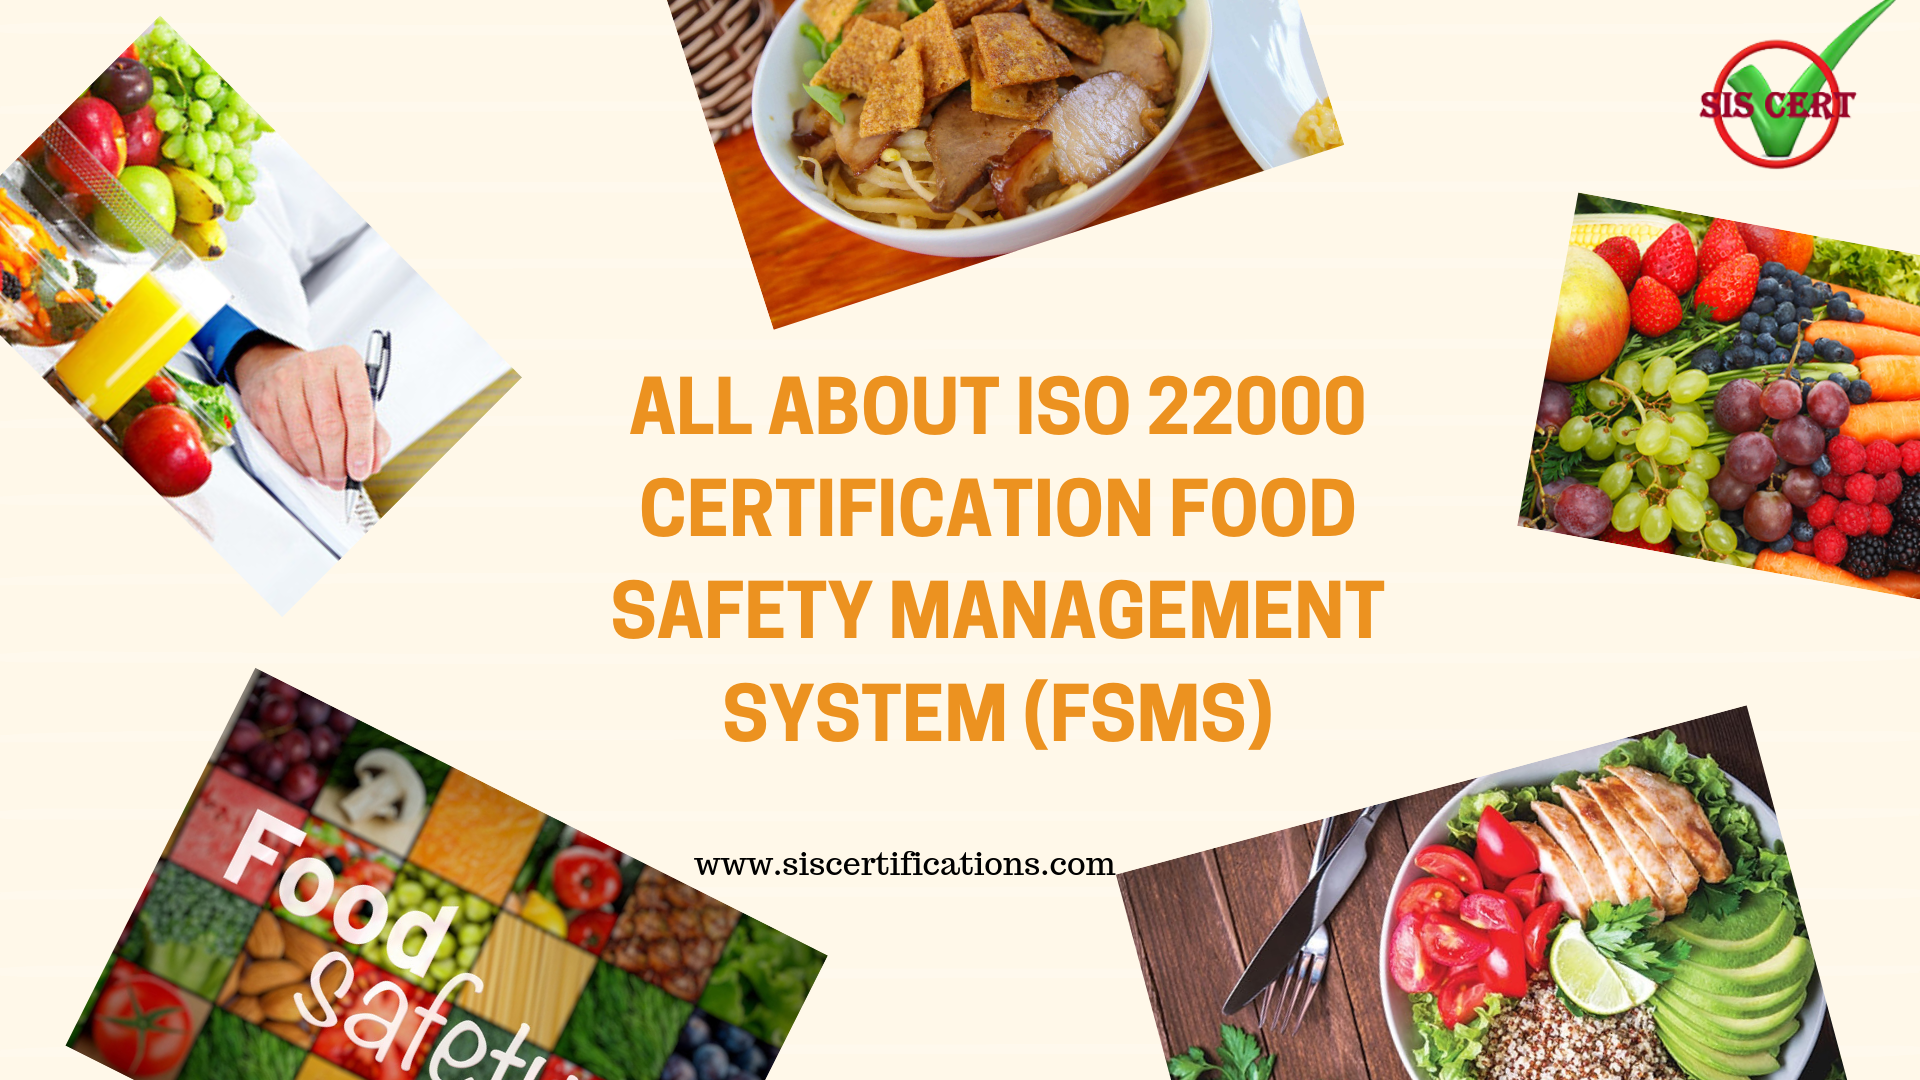 All about ISO 22000 Certification Food Safety Management